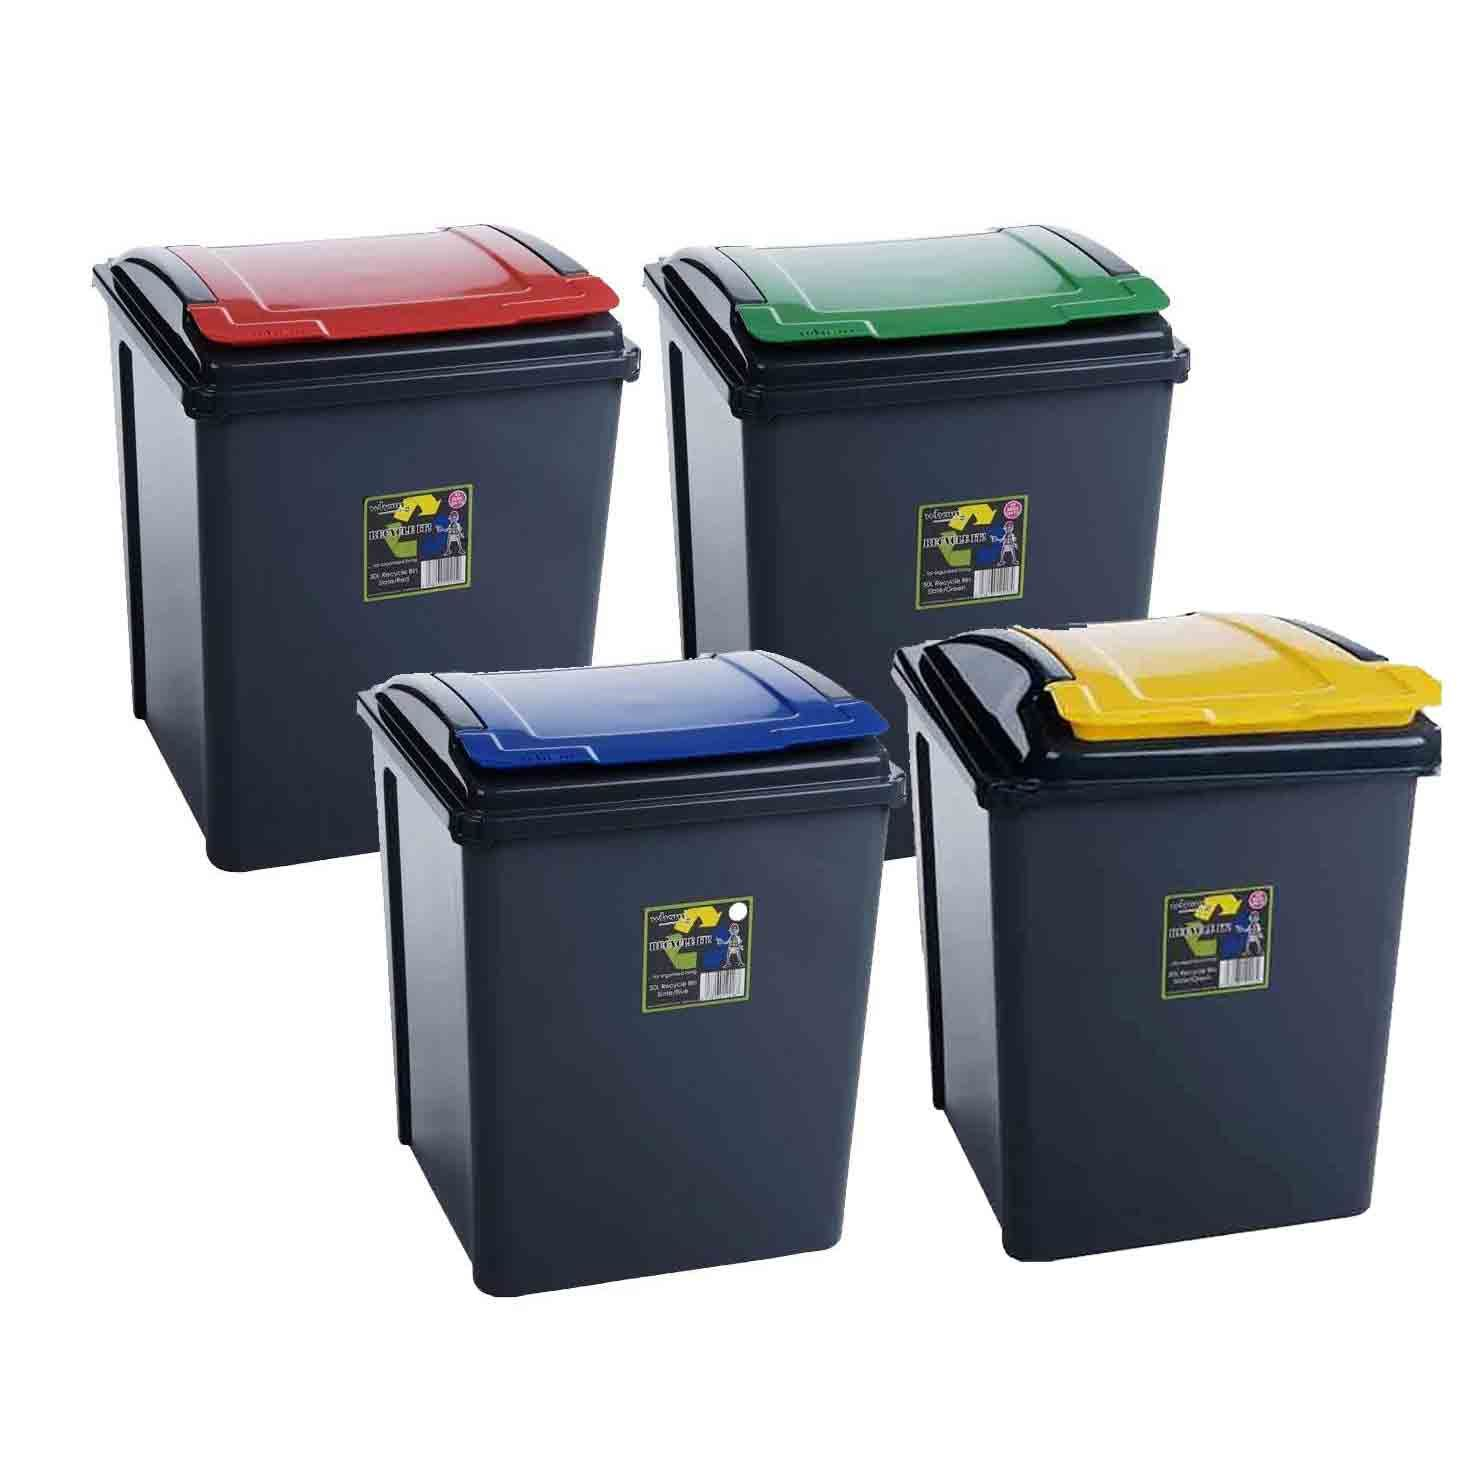 Collapsible Waste Bin For Kitchen